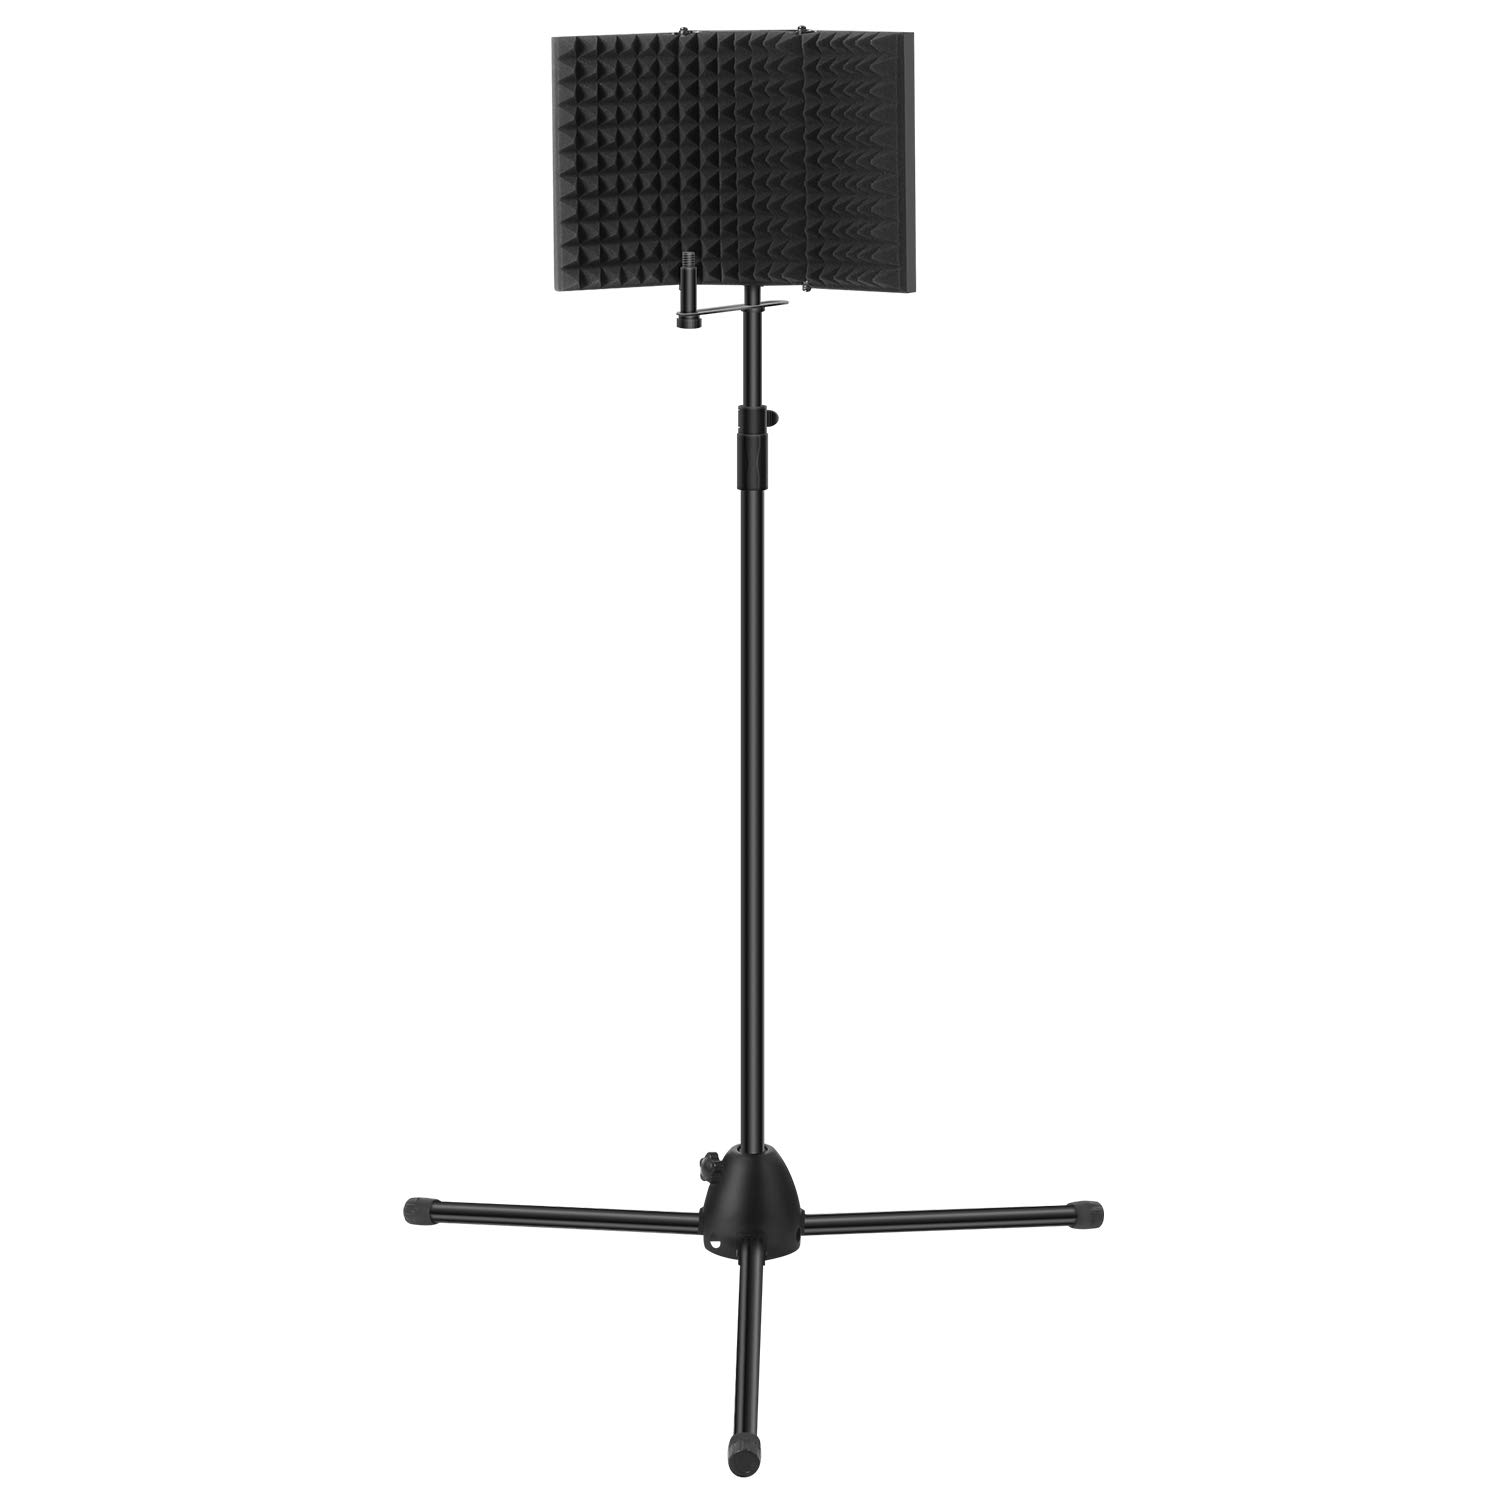 TONOR Microphone Isolation Shield and Stand Kit with Absorbing Cotton Insulation, Tripod Adjustable Stand, Microphone Studio Recording Accessories for Vocal Acoustic Recording and Podcasting, Black by TONOR